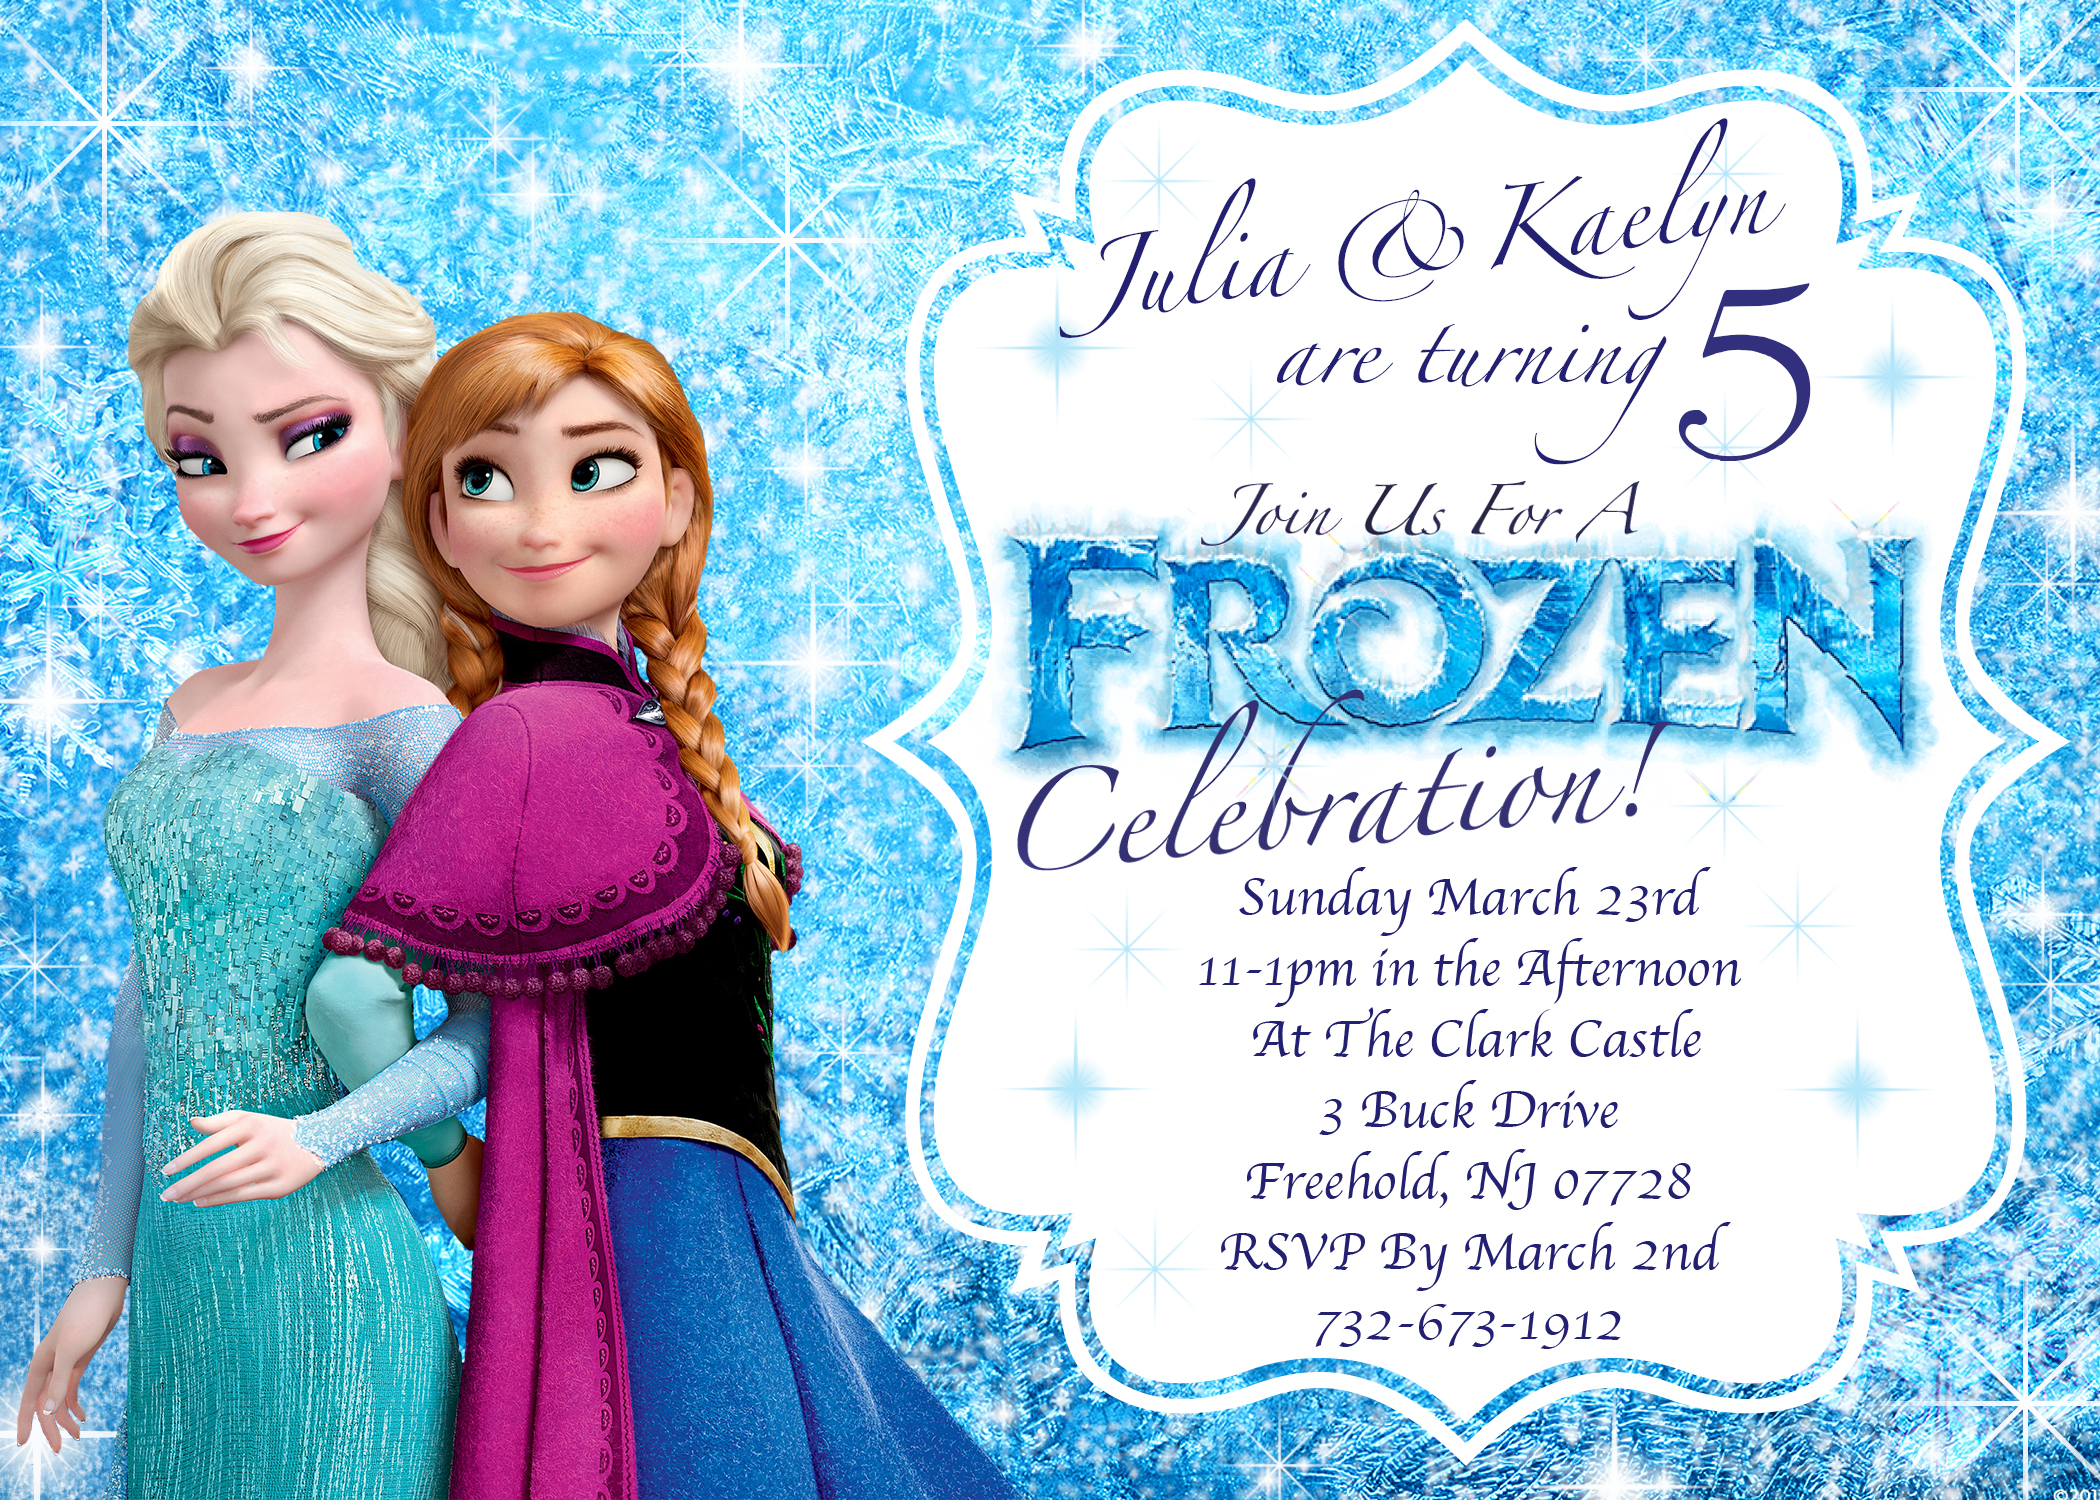 frozen themed birthday invitation templates ; Frozen-Birthday-Invitations-and-get-ideas-how-to-make-your-Birthday-invitation-with-appealing-appearance-1